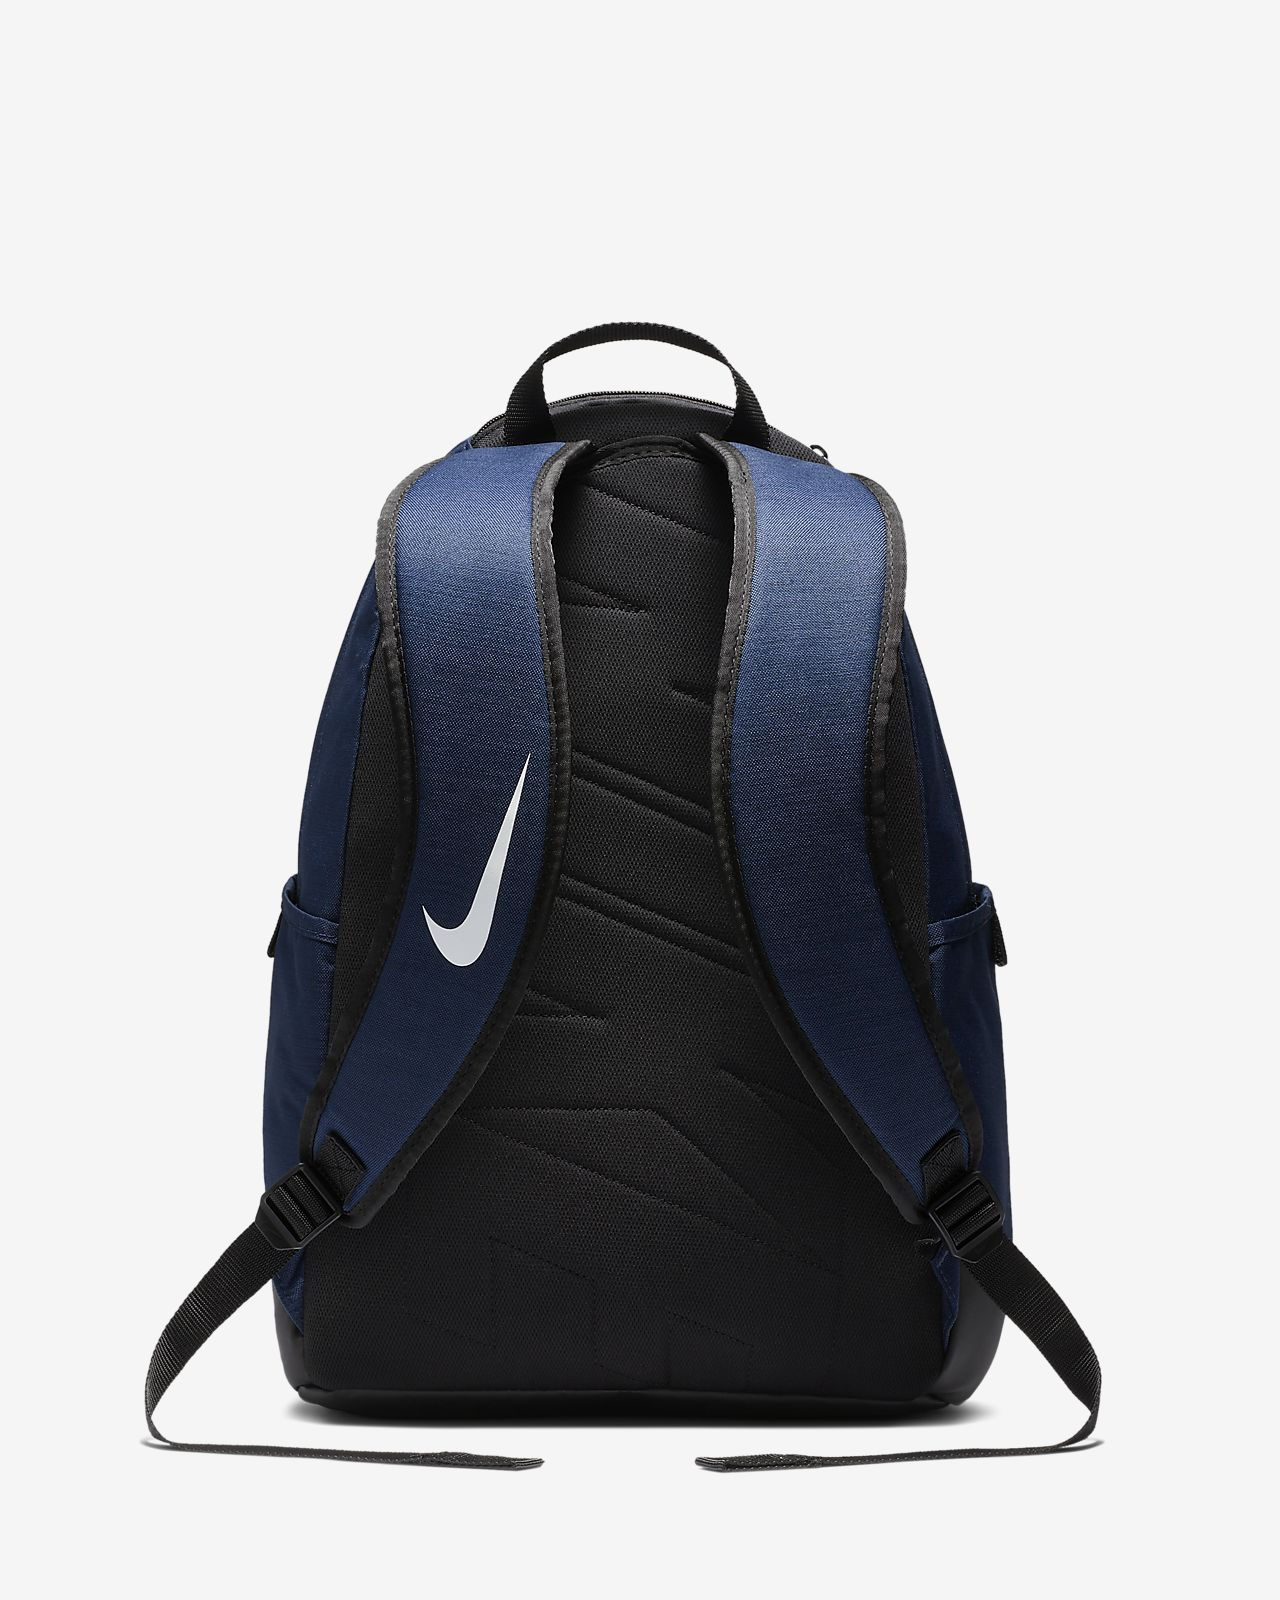 05c934c944 Nike Brasilia Training Backpack (Extra Large). Nike.com